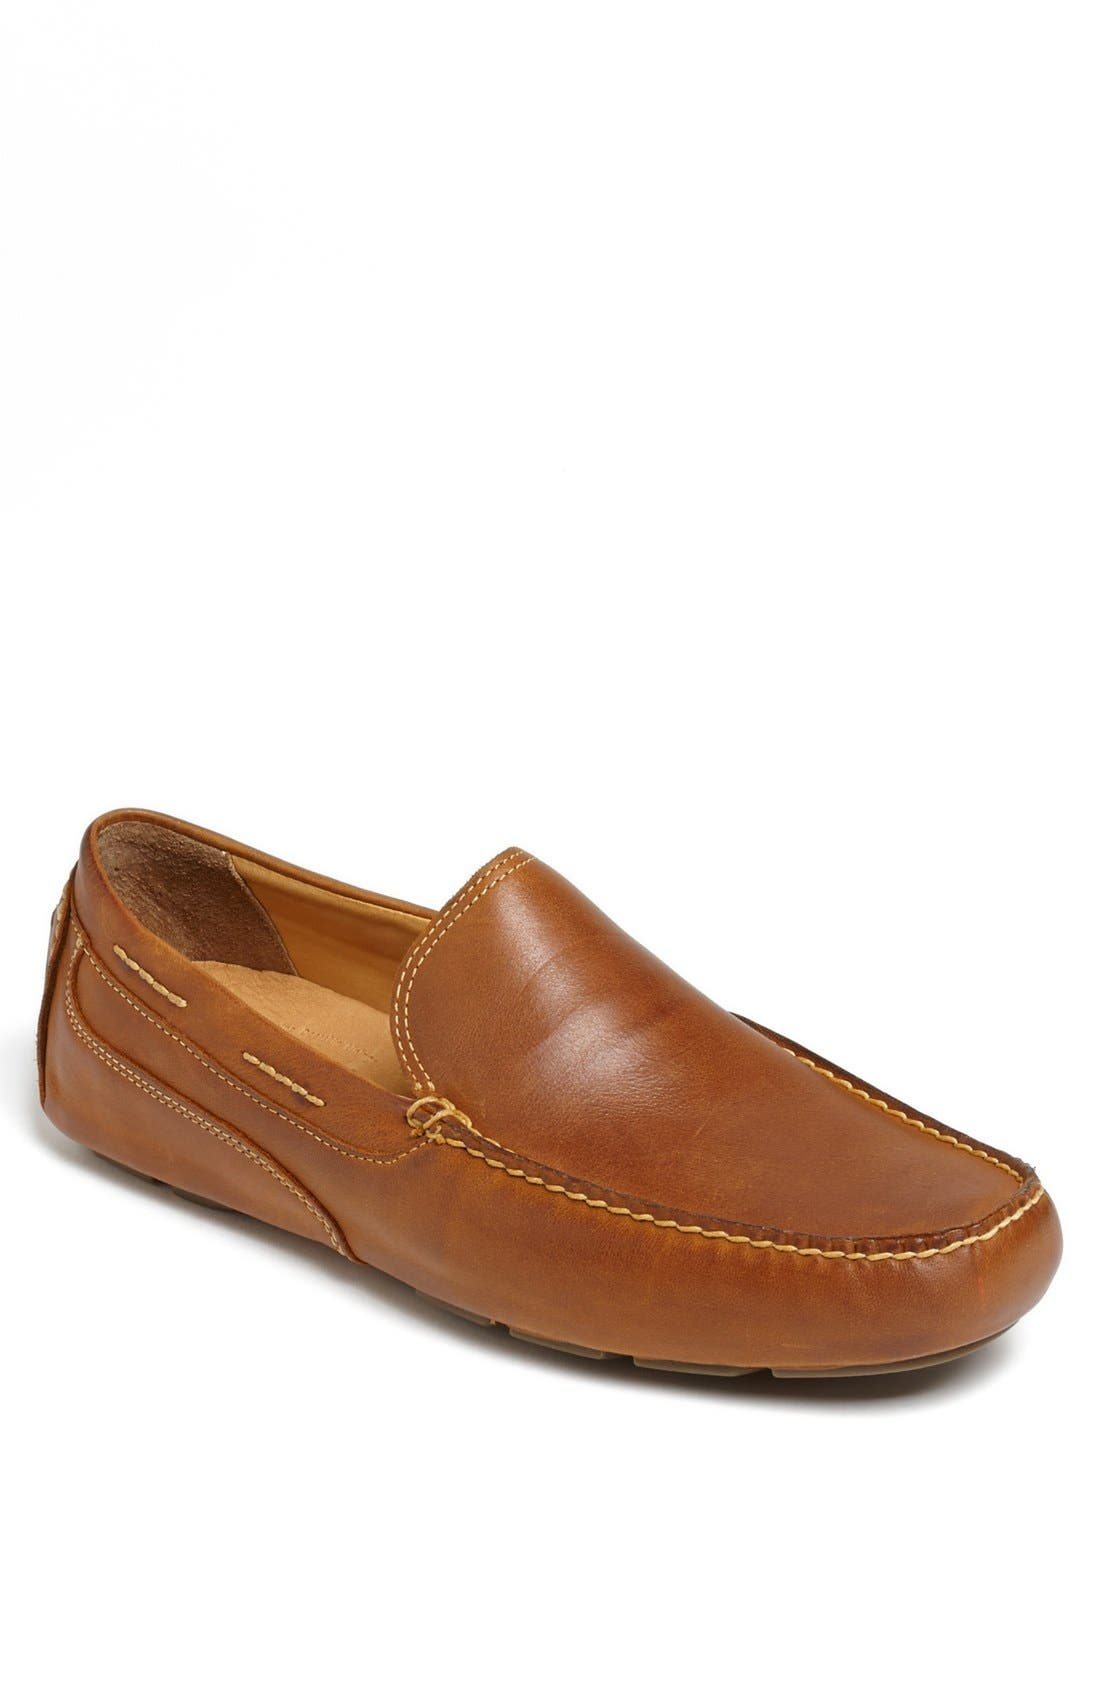 Alternate Image 1 Selected - Sperry 'Gold Cup - Kennebunk' Driving Shoe